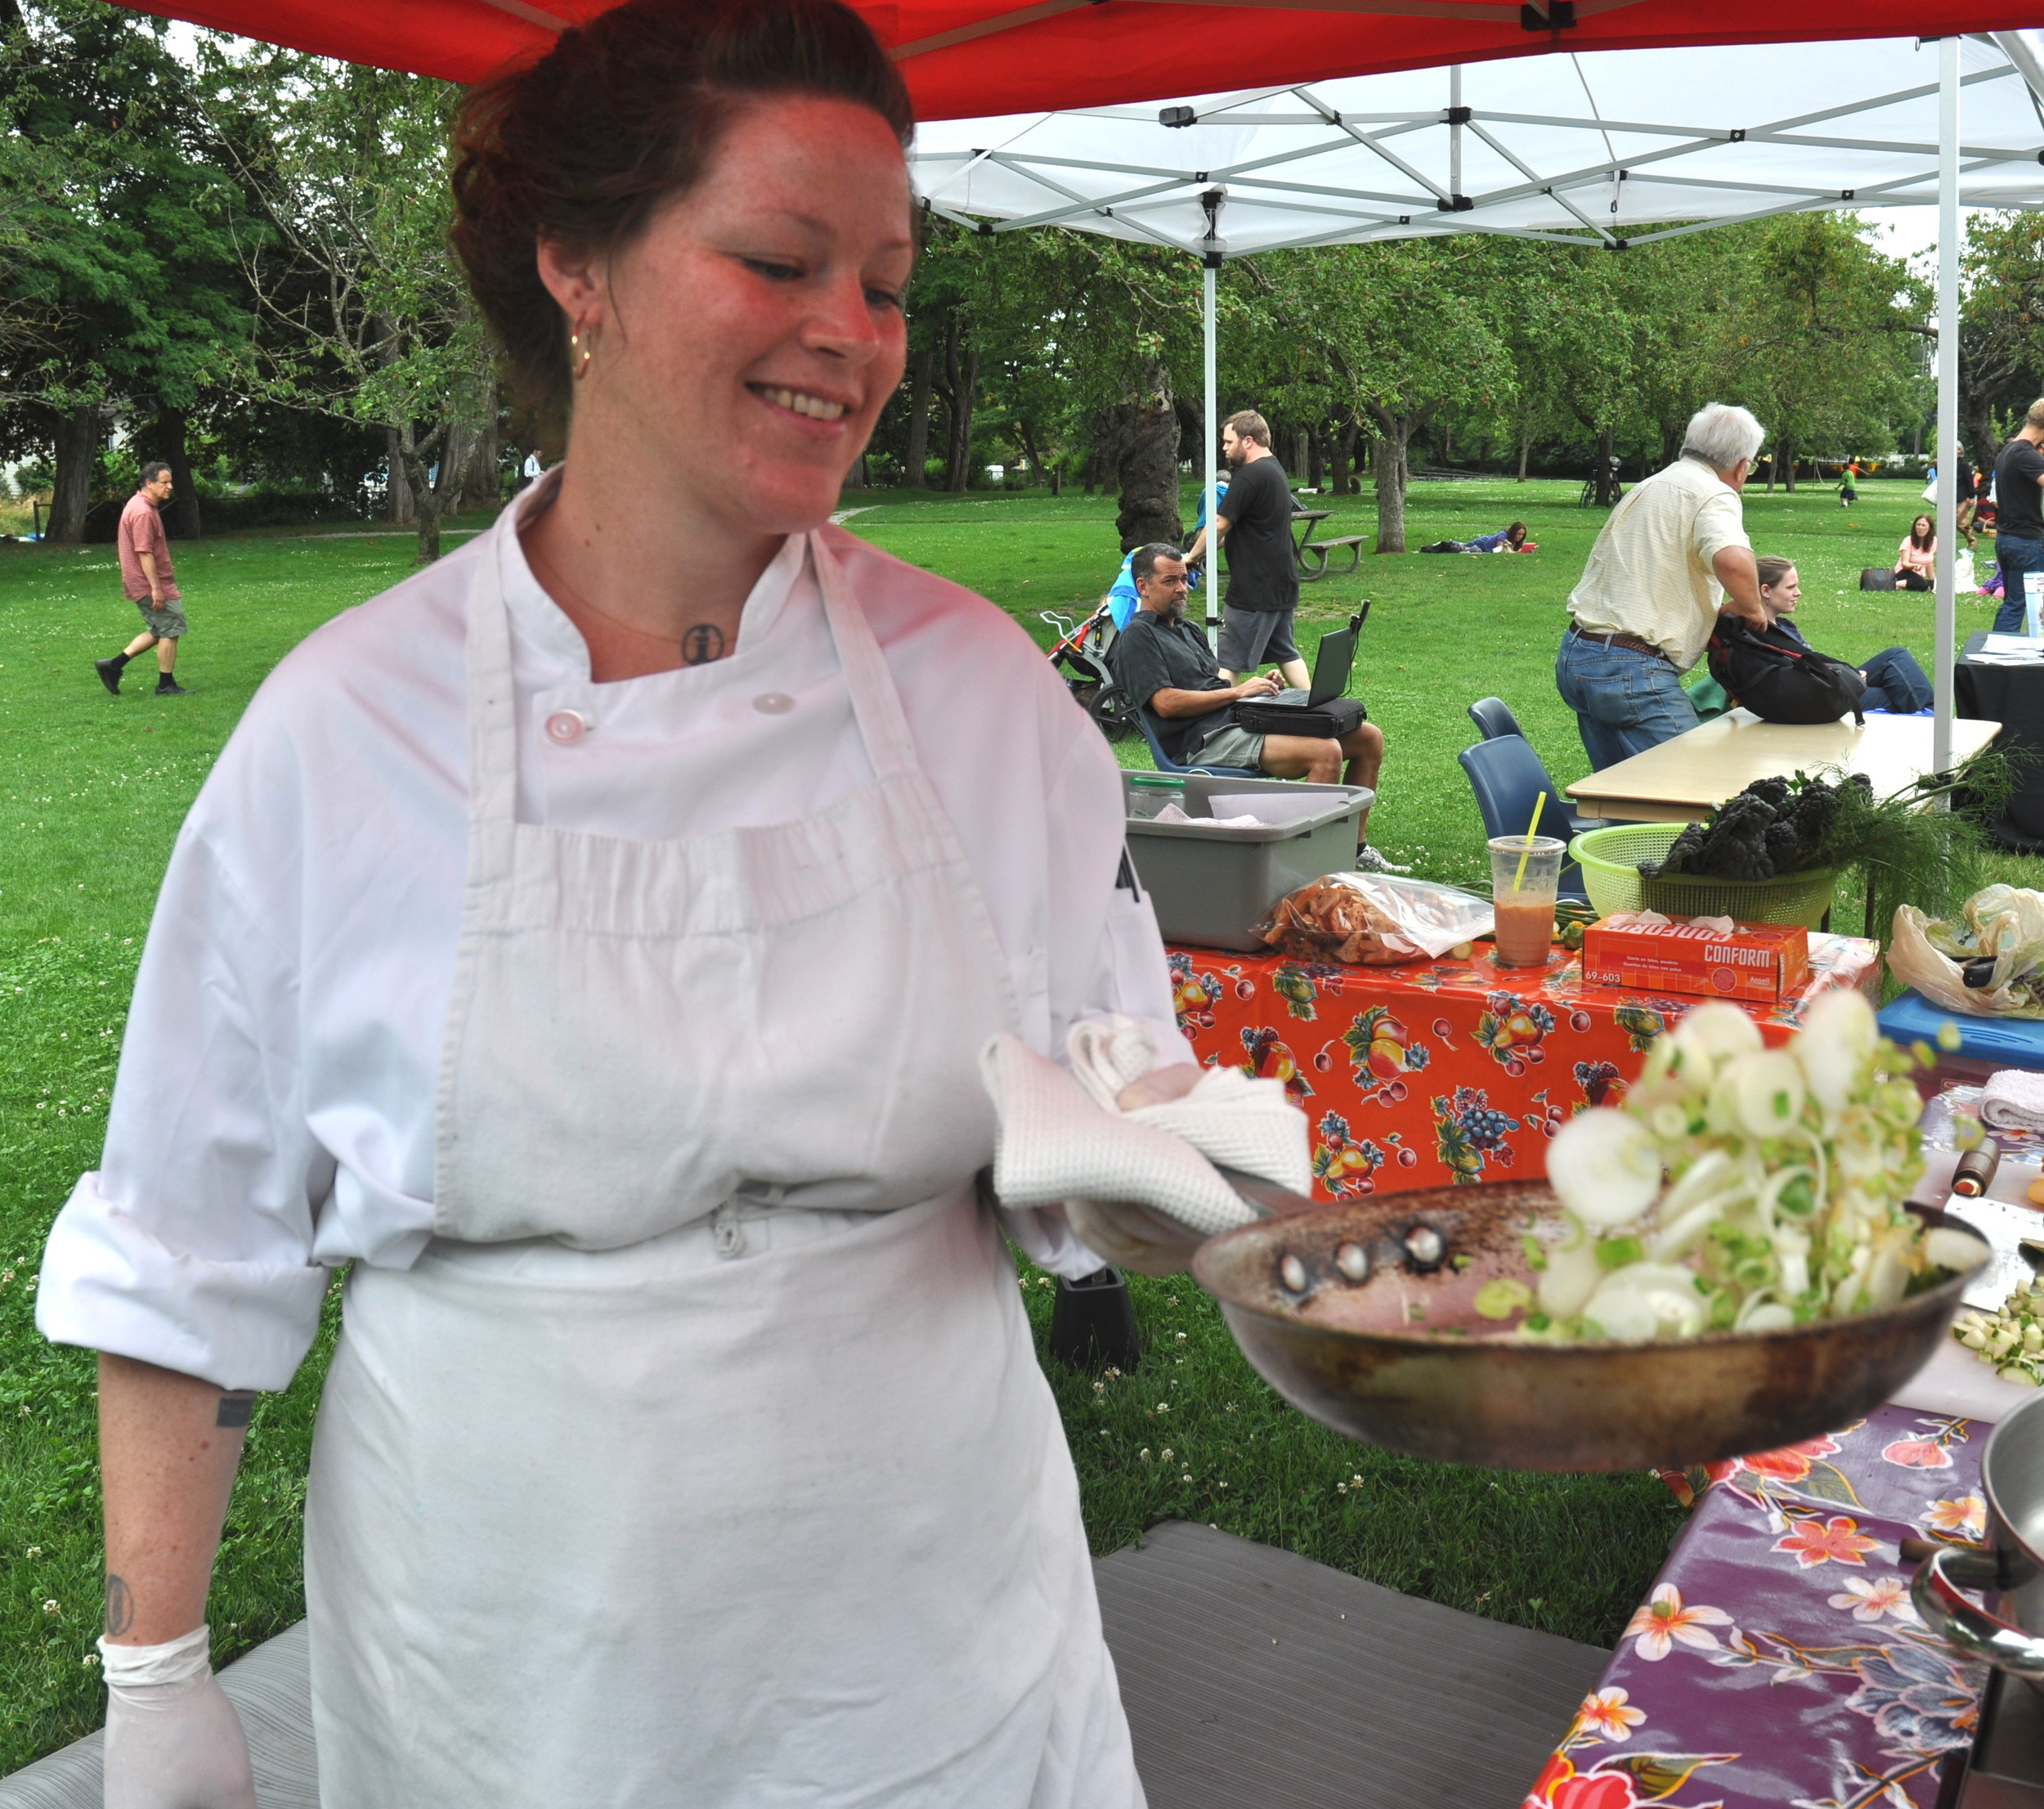 Chef Heather Immoor of Phinney Market at last year's cooking demonstration. Photo copyright 2013 by Zachary D. Lyons.